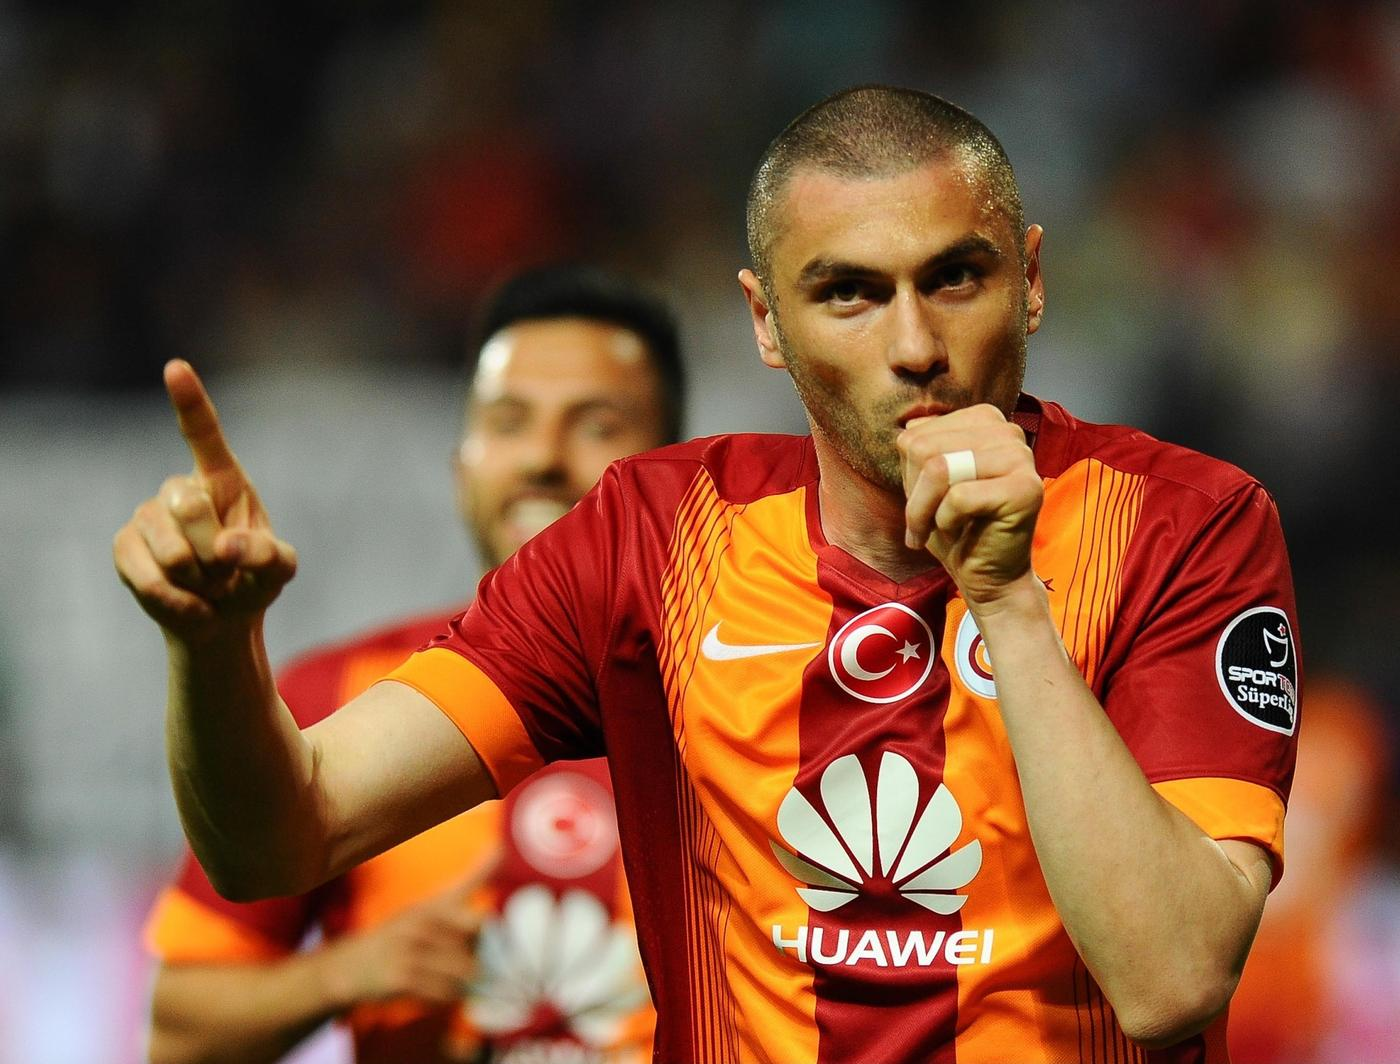 Turkish side Galatasaray tell West ham that striker Burak Yilmaz is not for sale